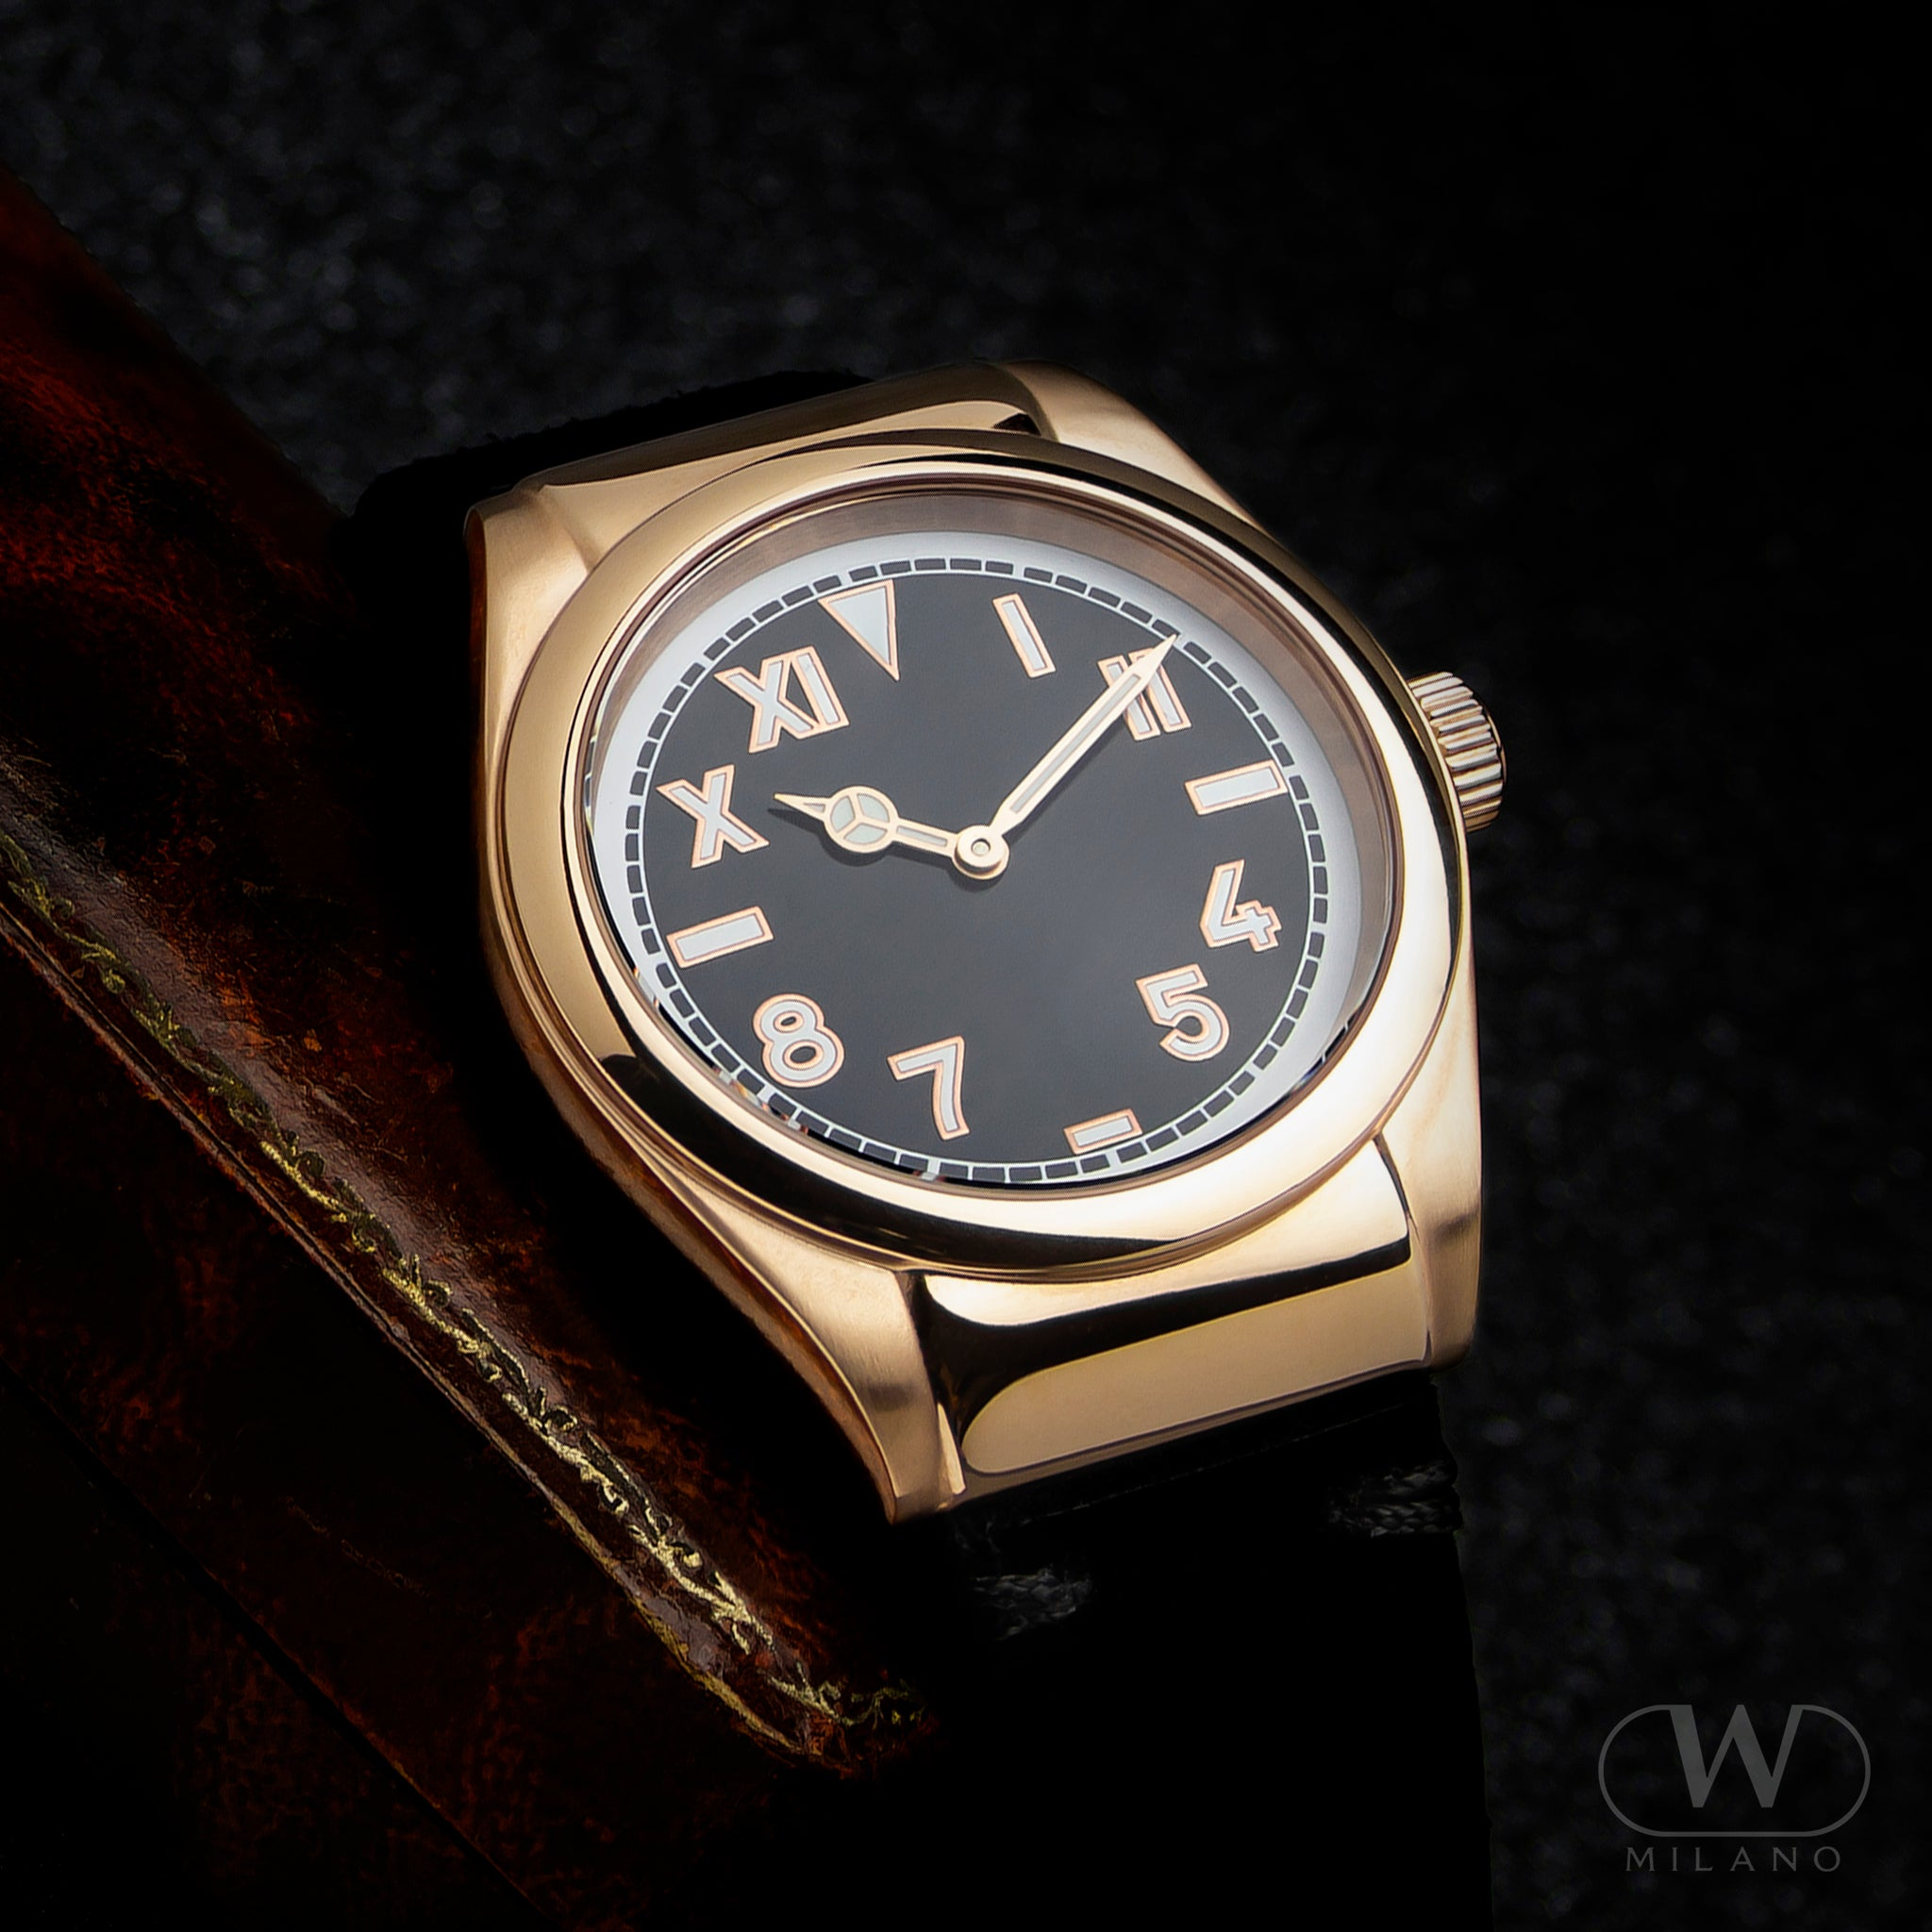 display of mens gold and black watch with Wintex Milano logo